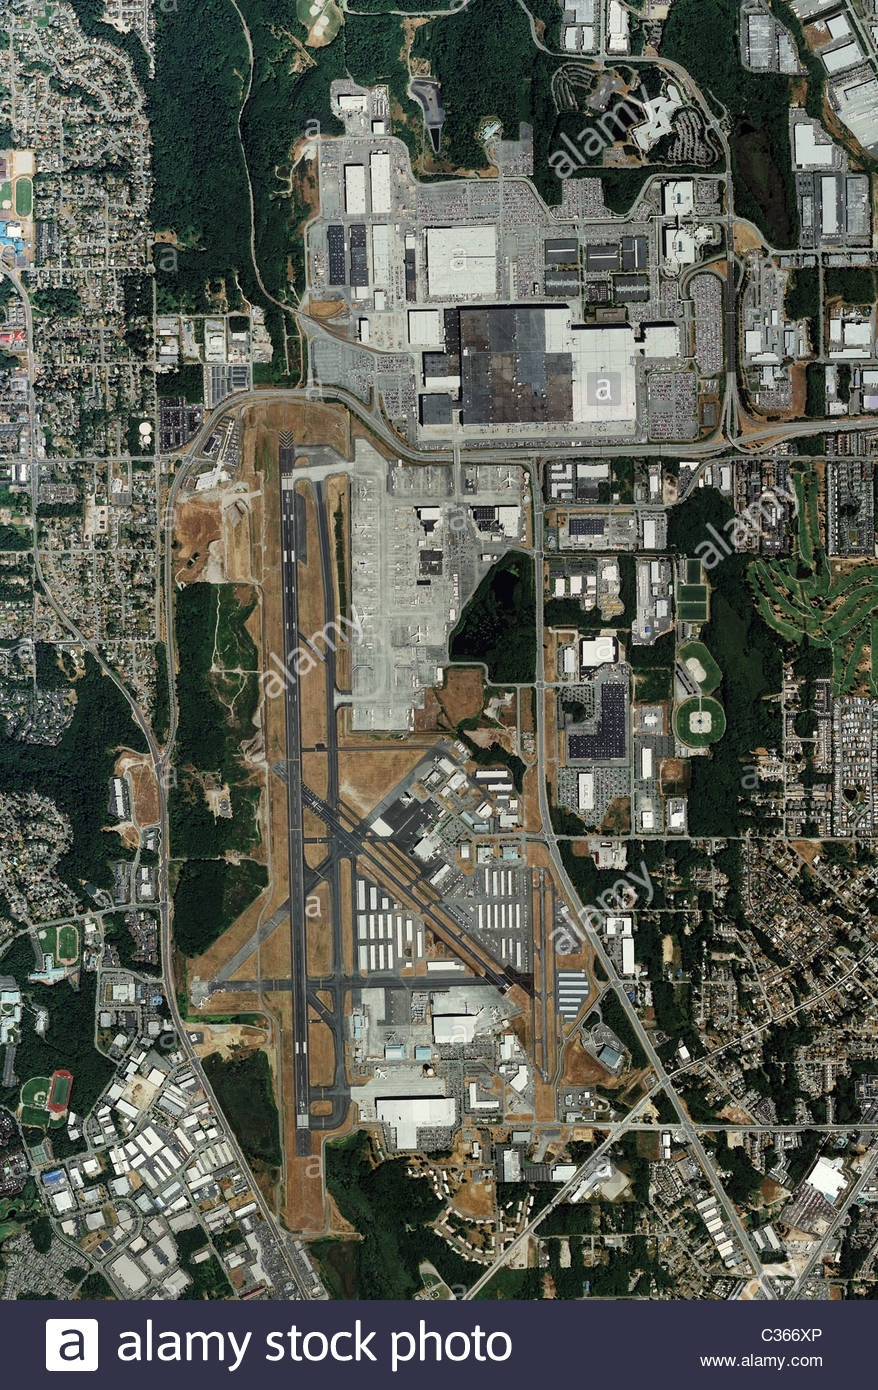 Aerial Map View Boeing Everett Factory And Paine Field inside Boeing Factory Everett Map